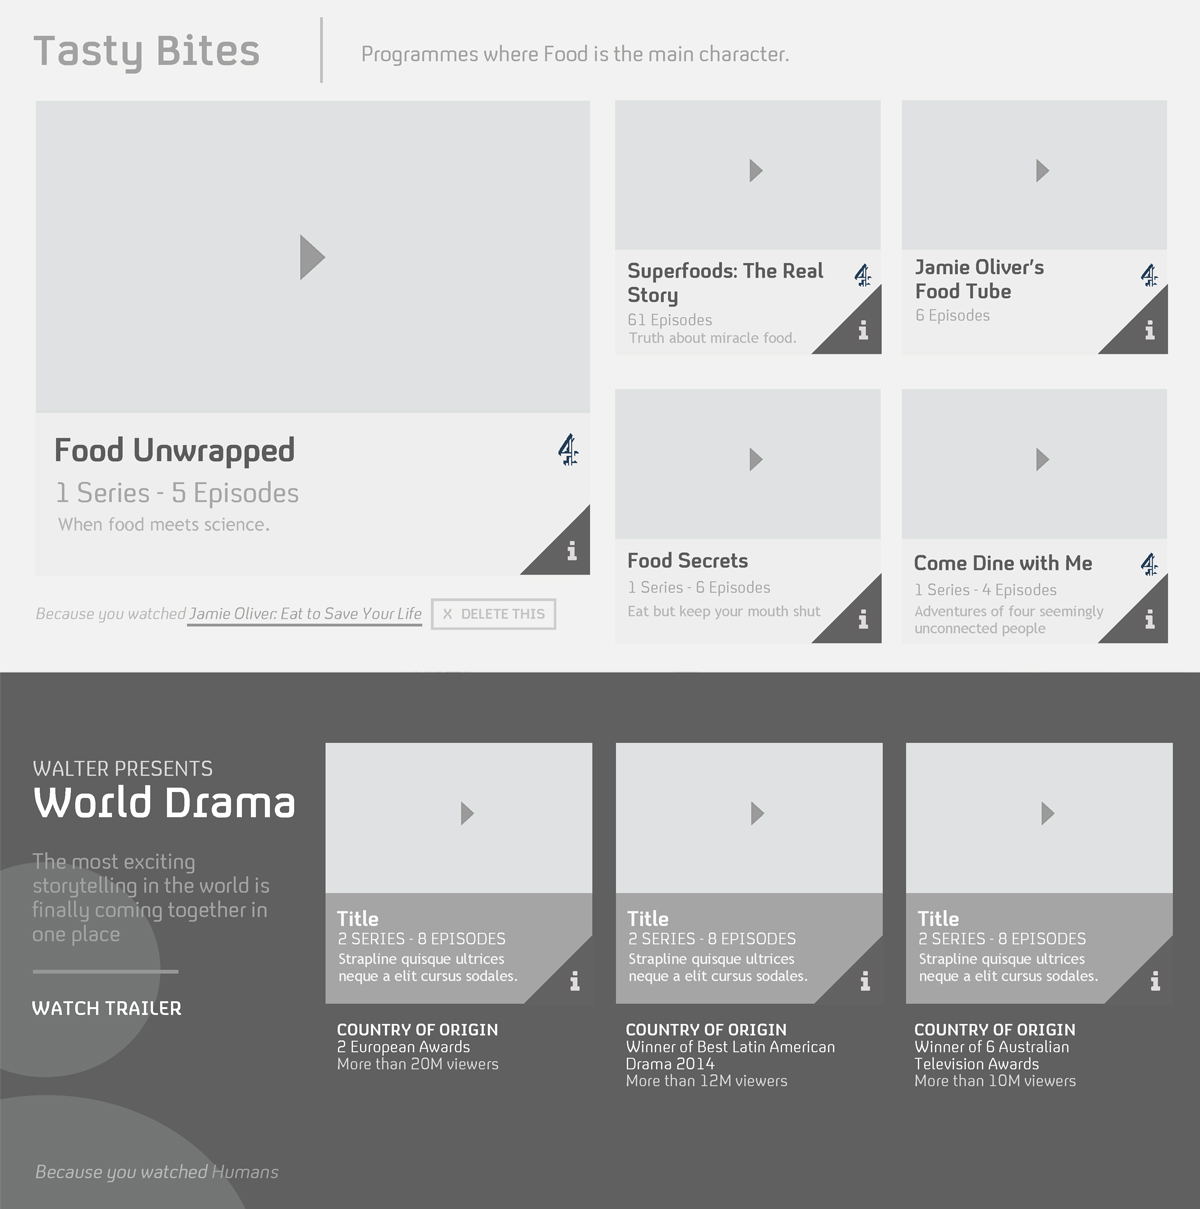 Examples of the designs made for this consultancy firm on desktop and mobile.